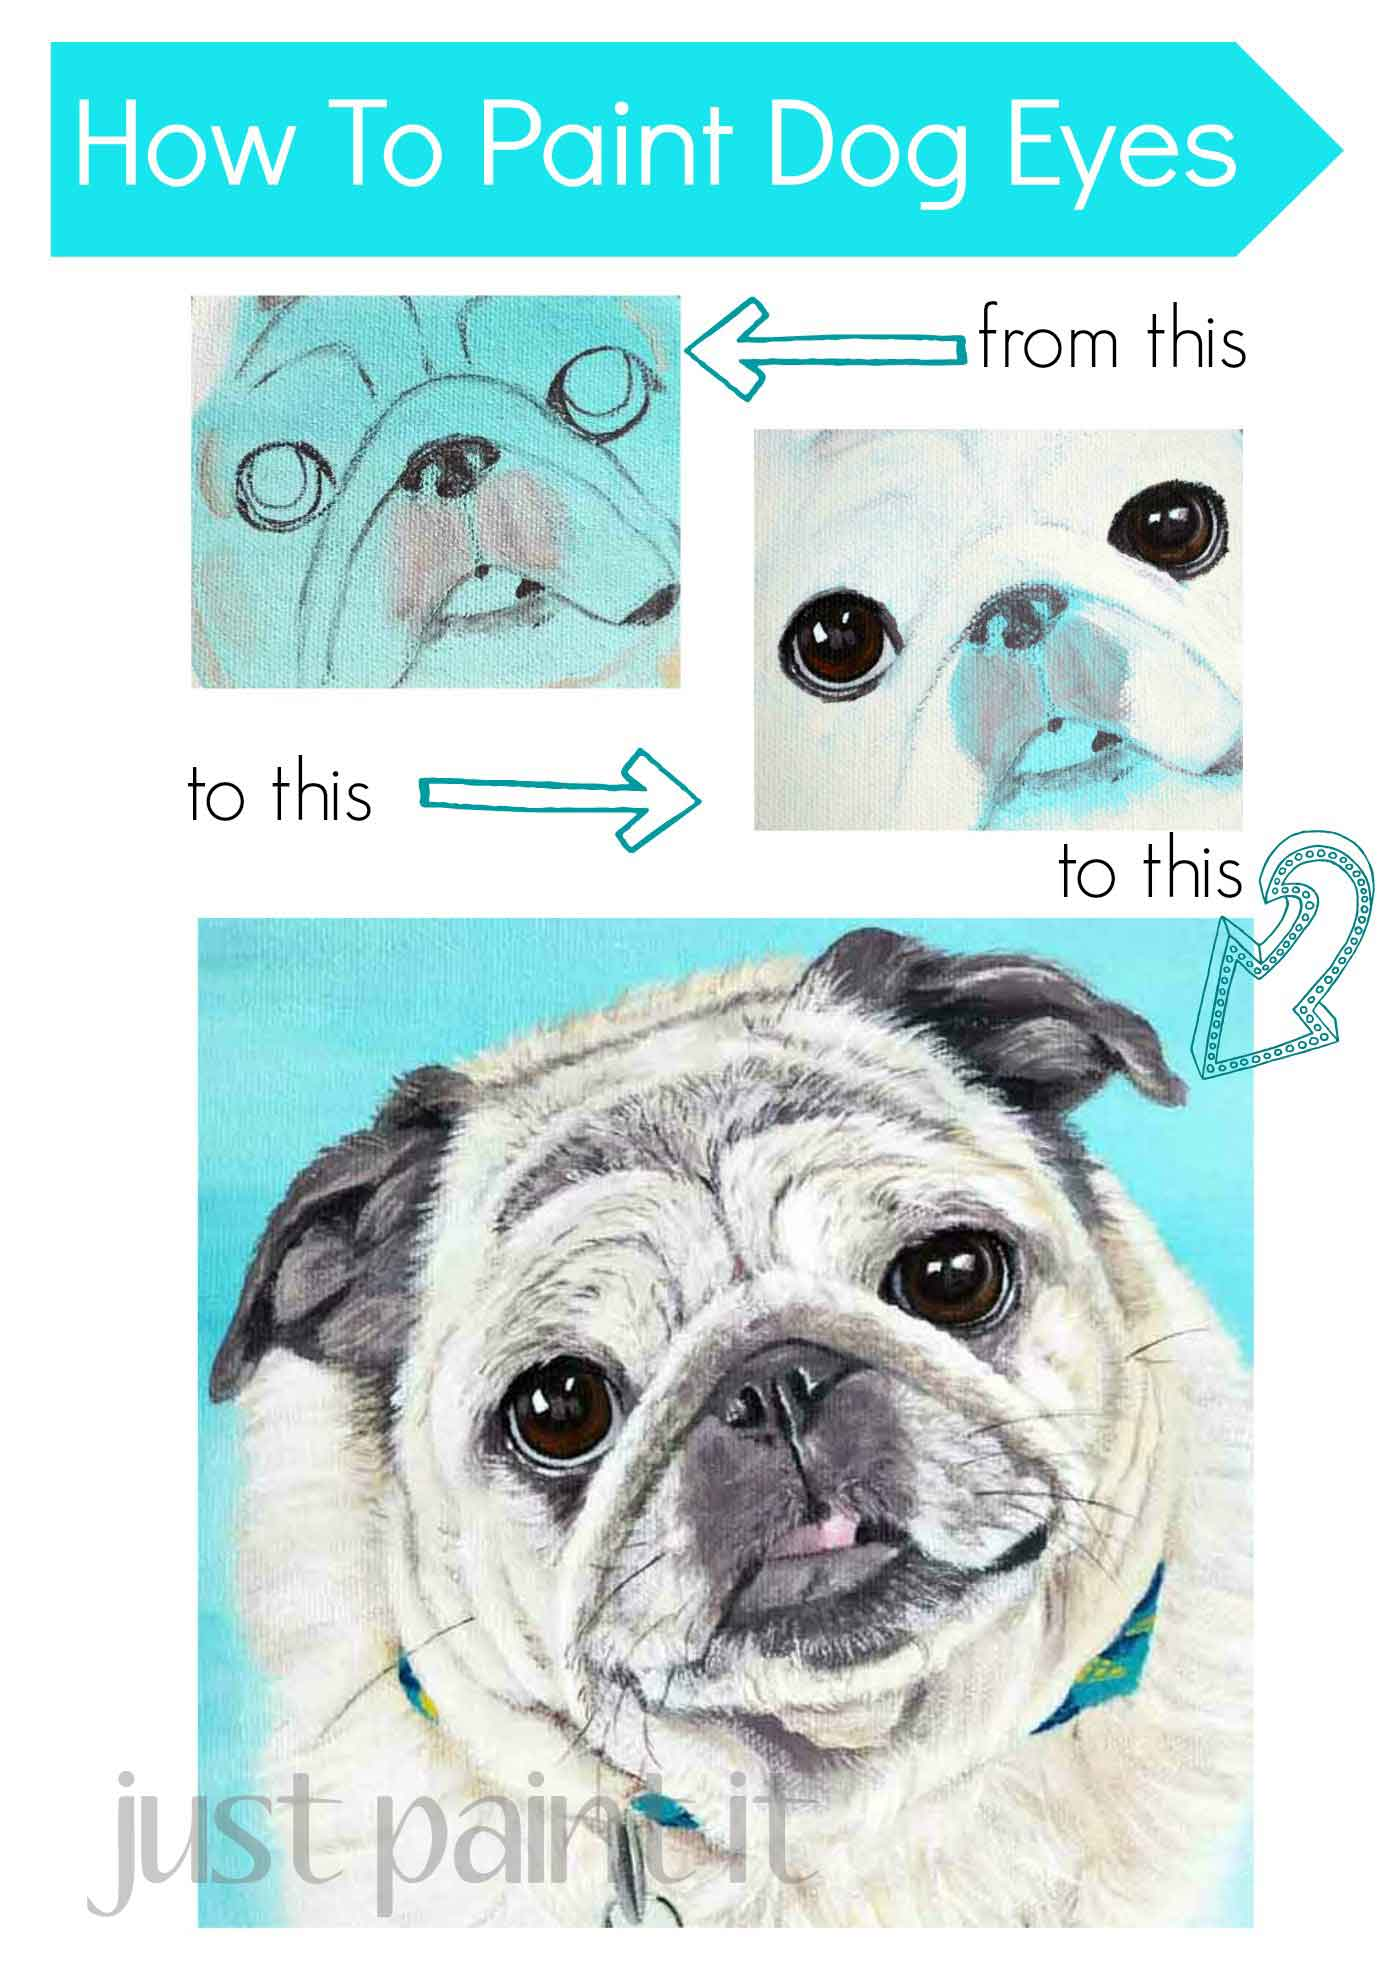 How To Draw A Lobster Stepbystep Howtopaintdogeyes '�  How To Paint Dog Eyes  Just Paint